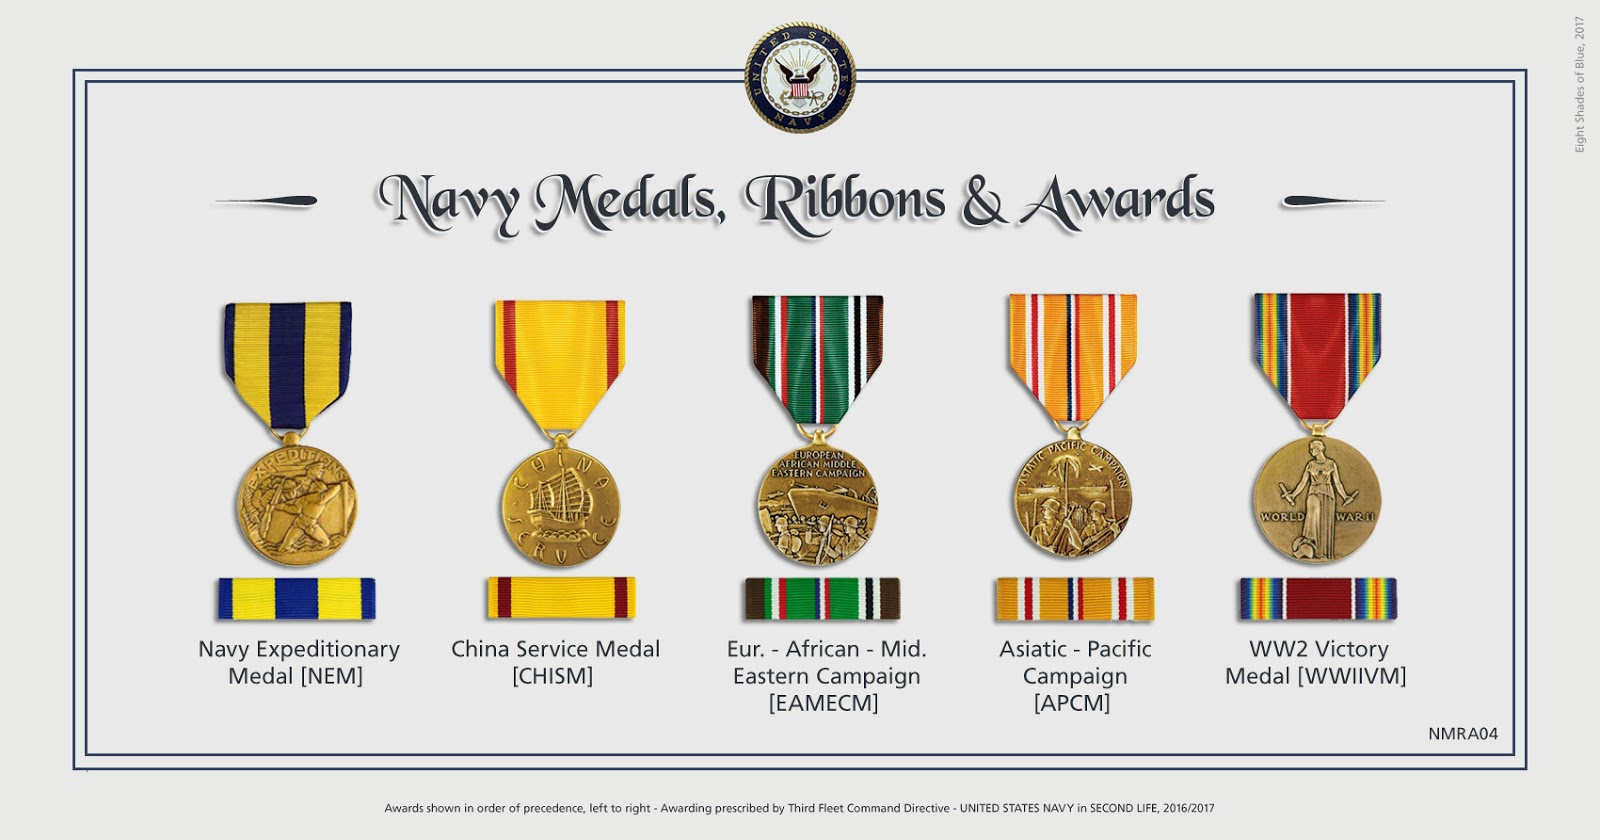 Awards and decorations of the United States government